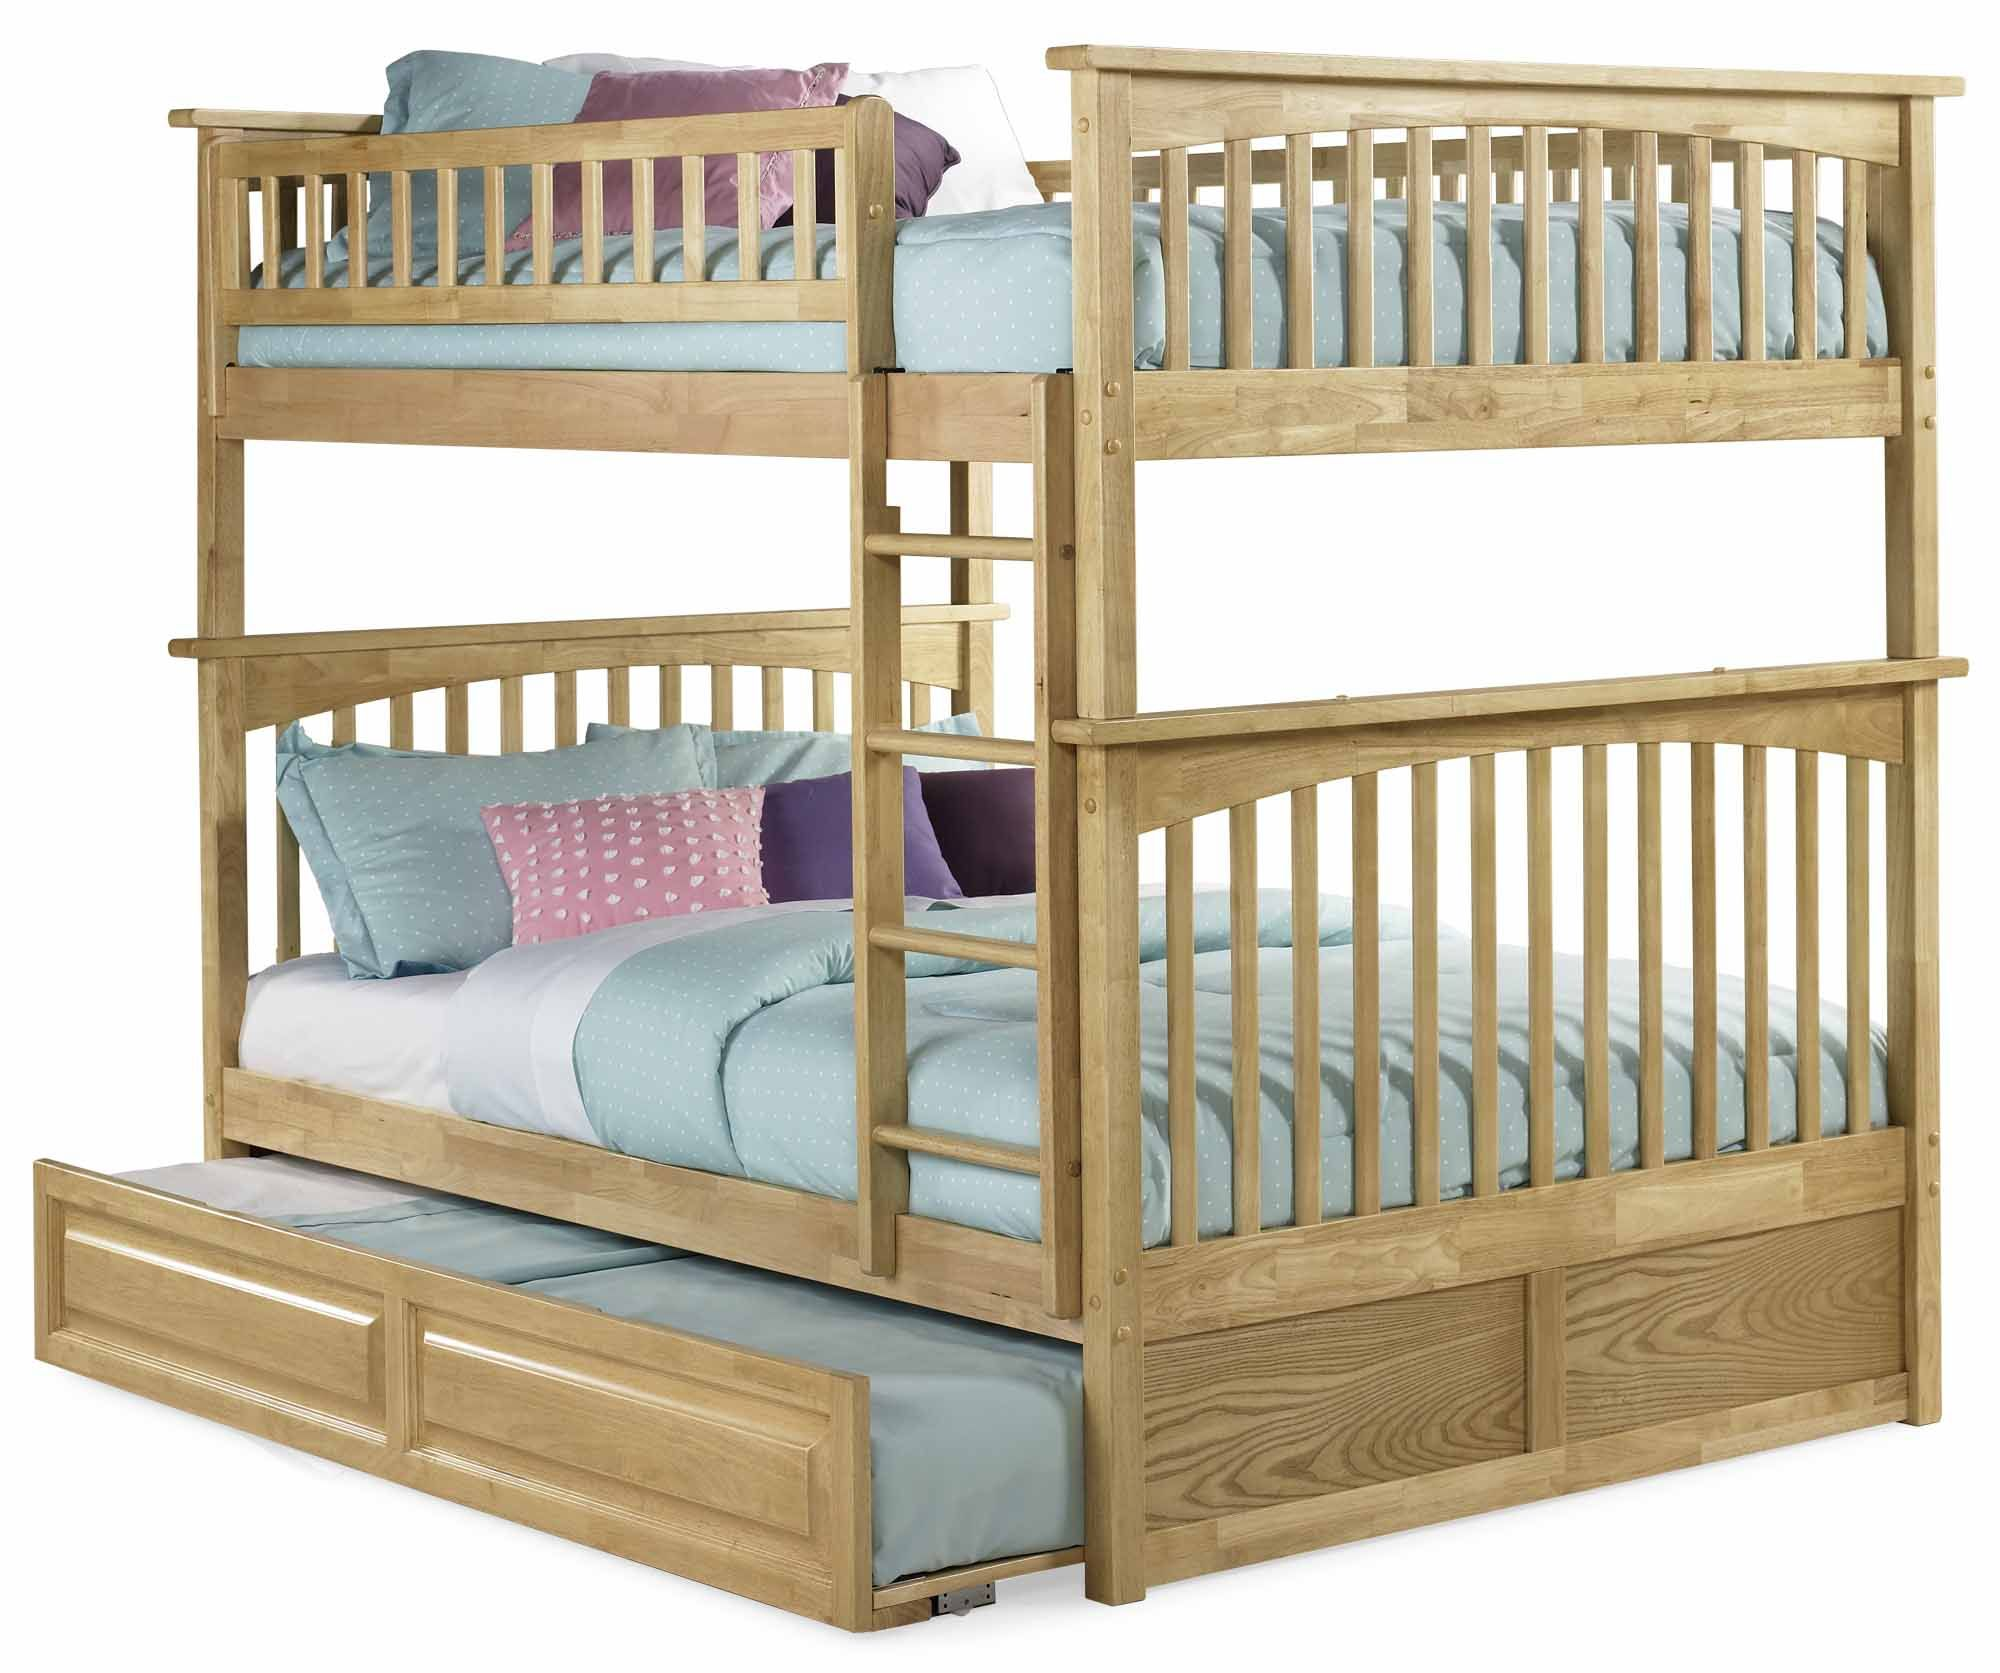 Natural Maple Columbia Bunk Bed Full/Full with a Raised